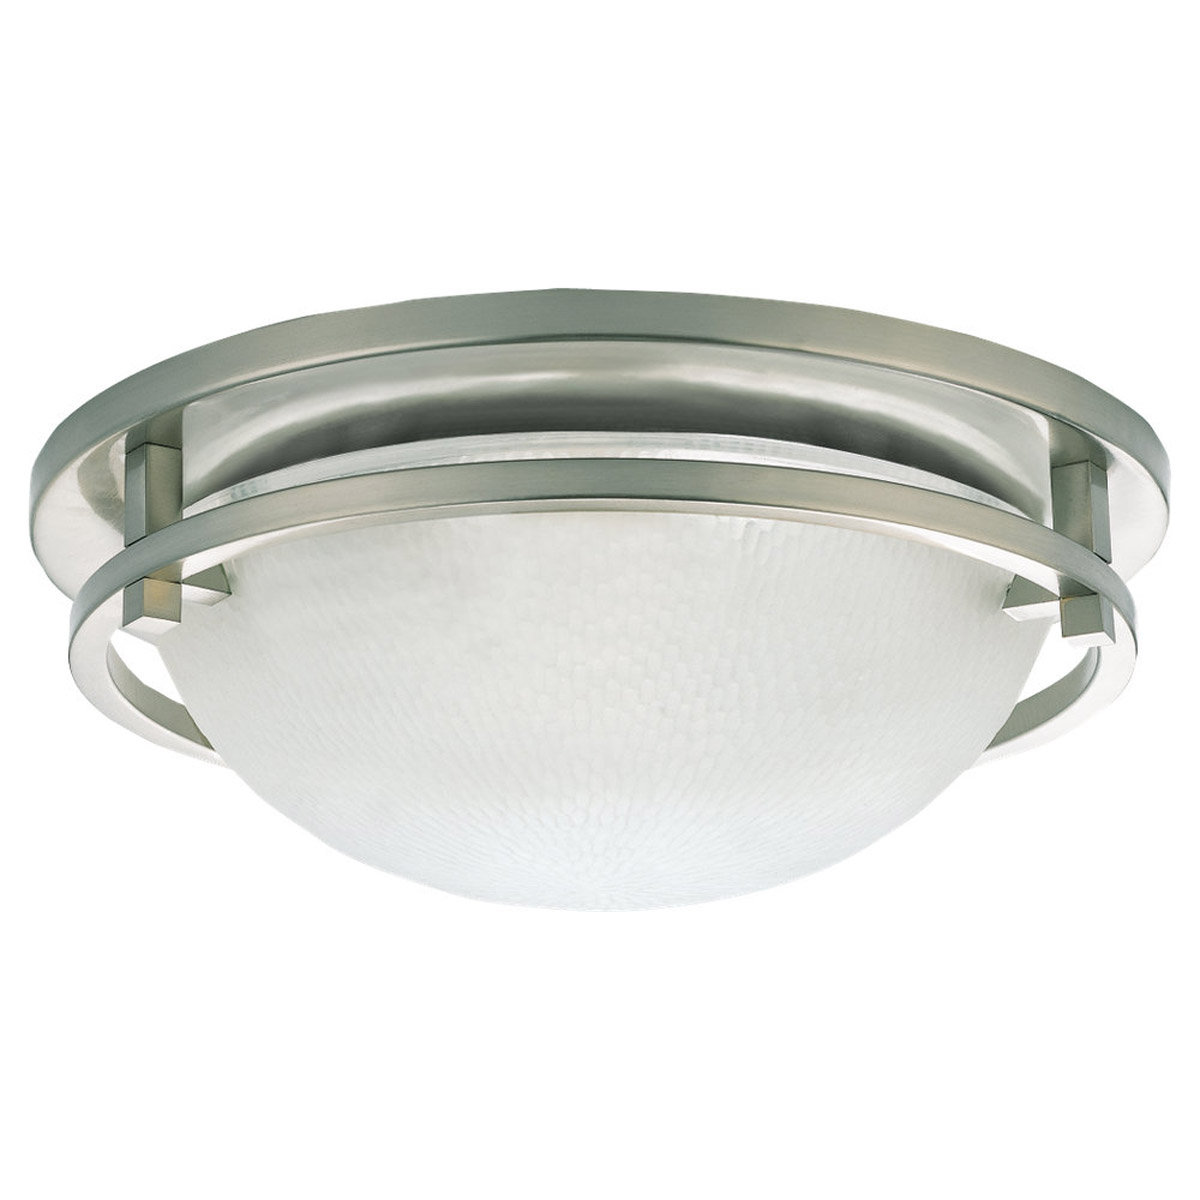 Sea Gull 75114-962 Eternity 2 Light 14 inch Brushed Nickel Flush Mount Ceiling Light photo